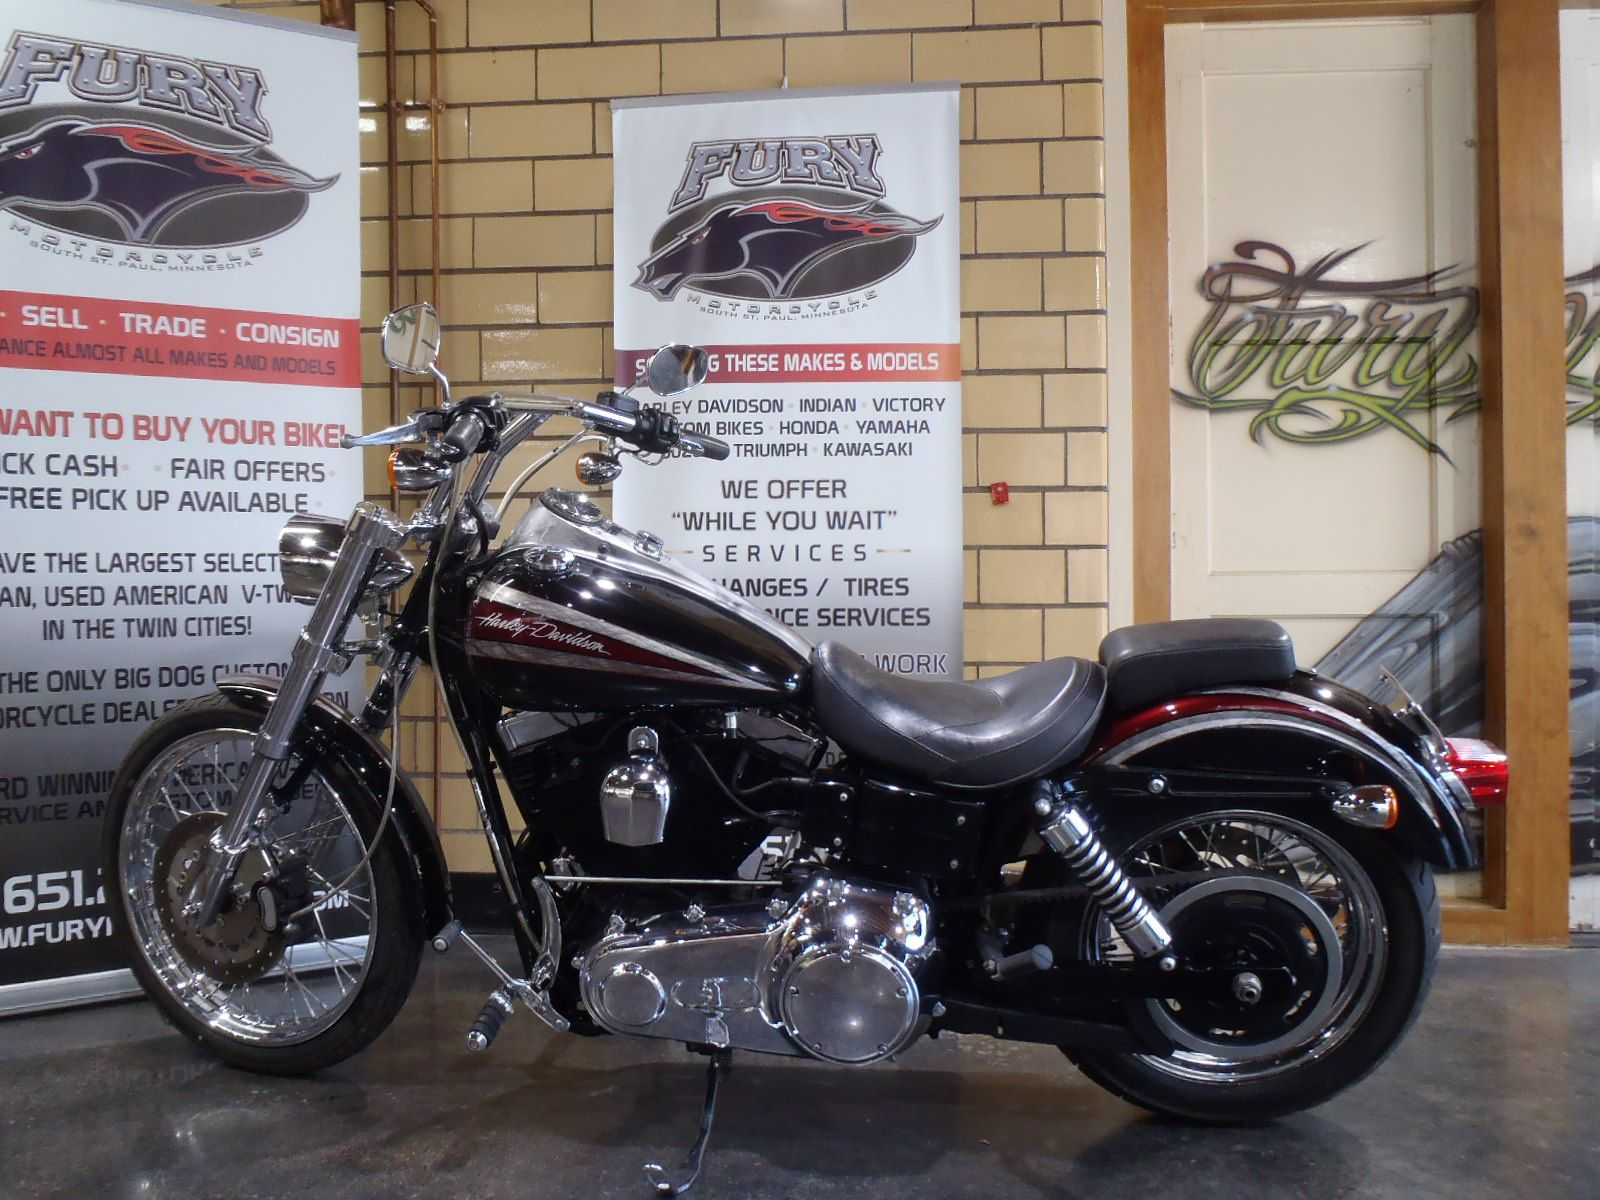 2009 Harley-Davidson Dyna Super Glide Custom in South Saint Paul, Minnesota - Photo 13